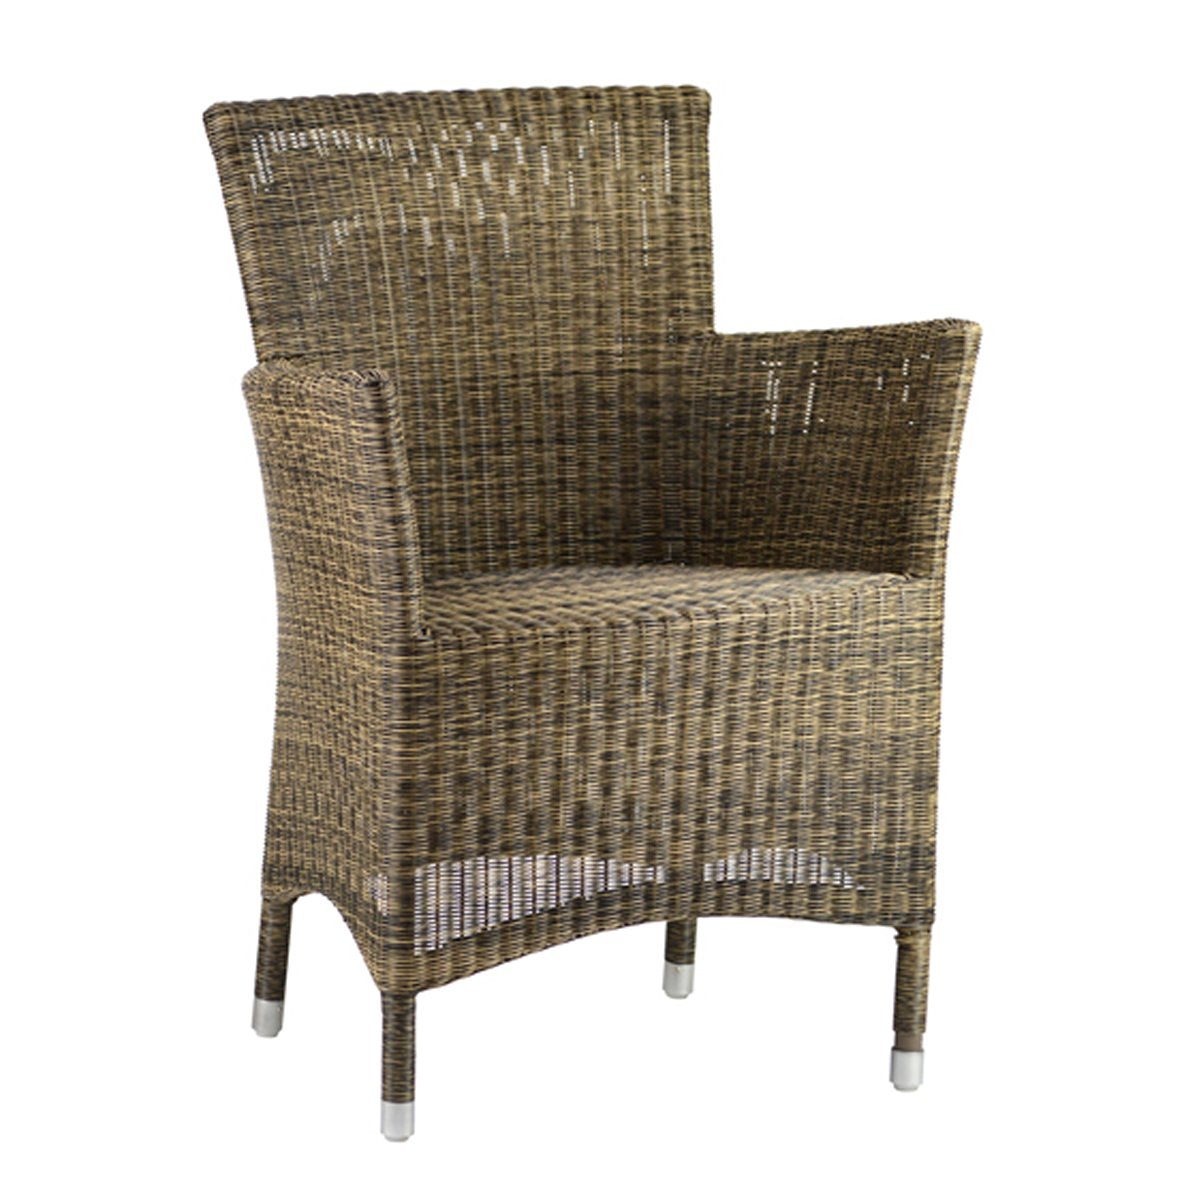 wicker swivel patio chair platform rocking chairs cheap woven find deals on line at fiber